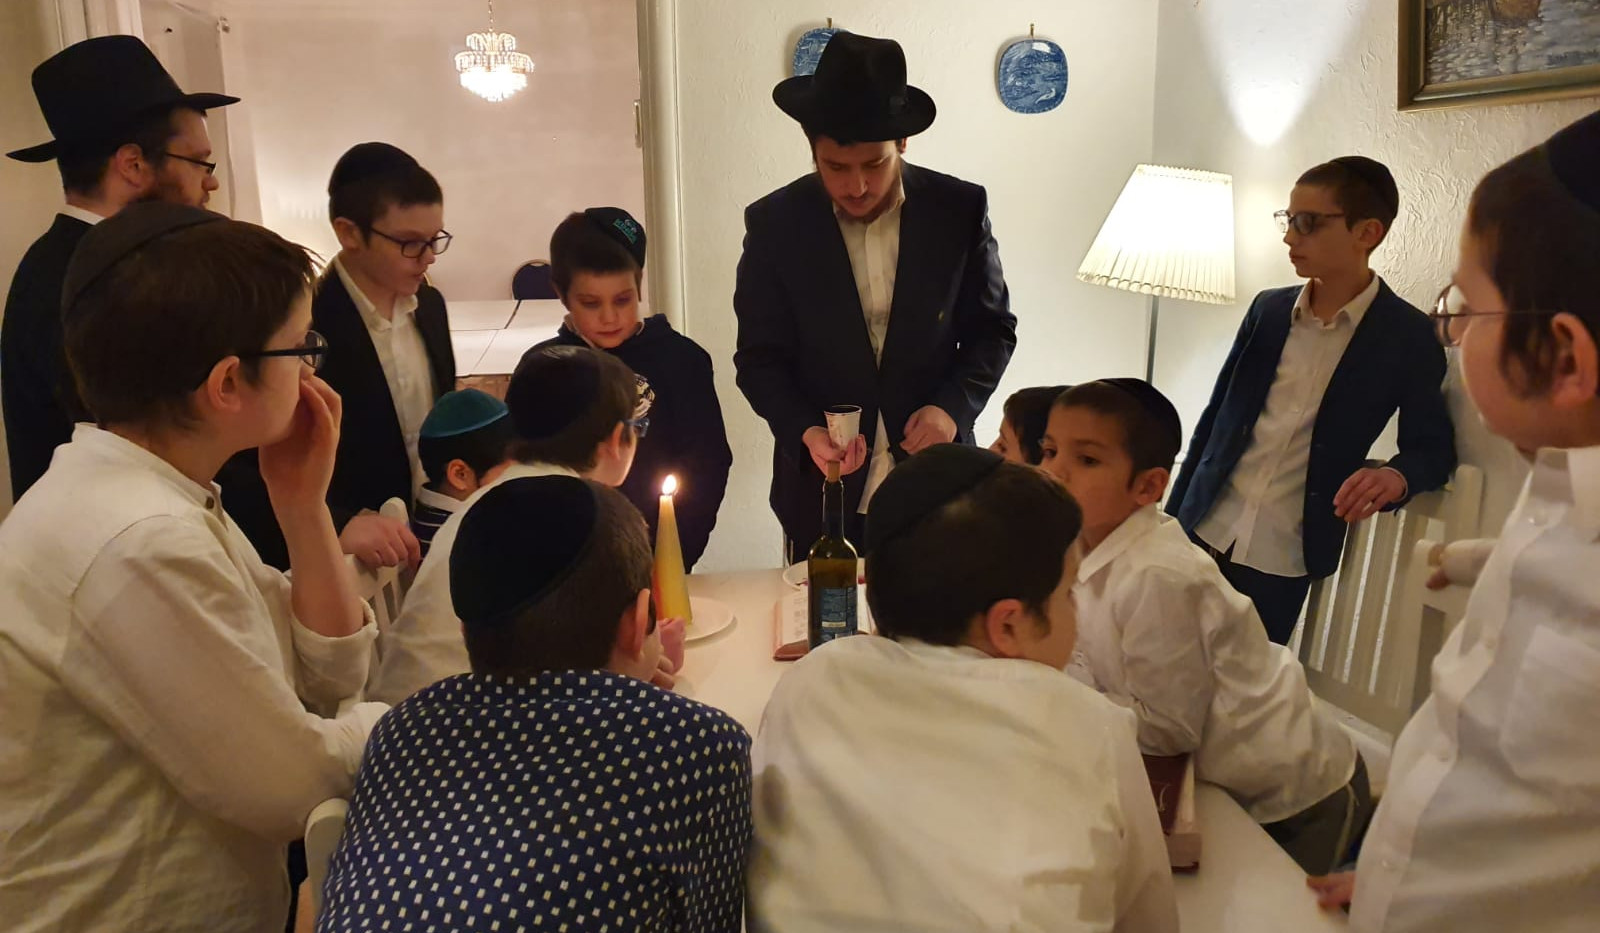 Shabbos in camp is like Simchas Torah